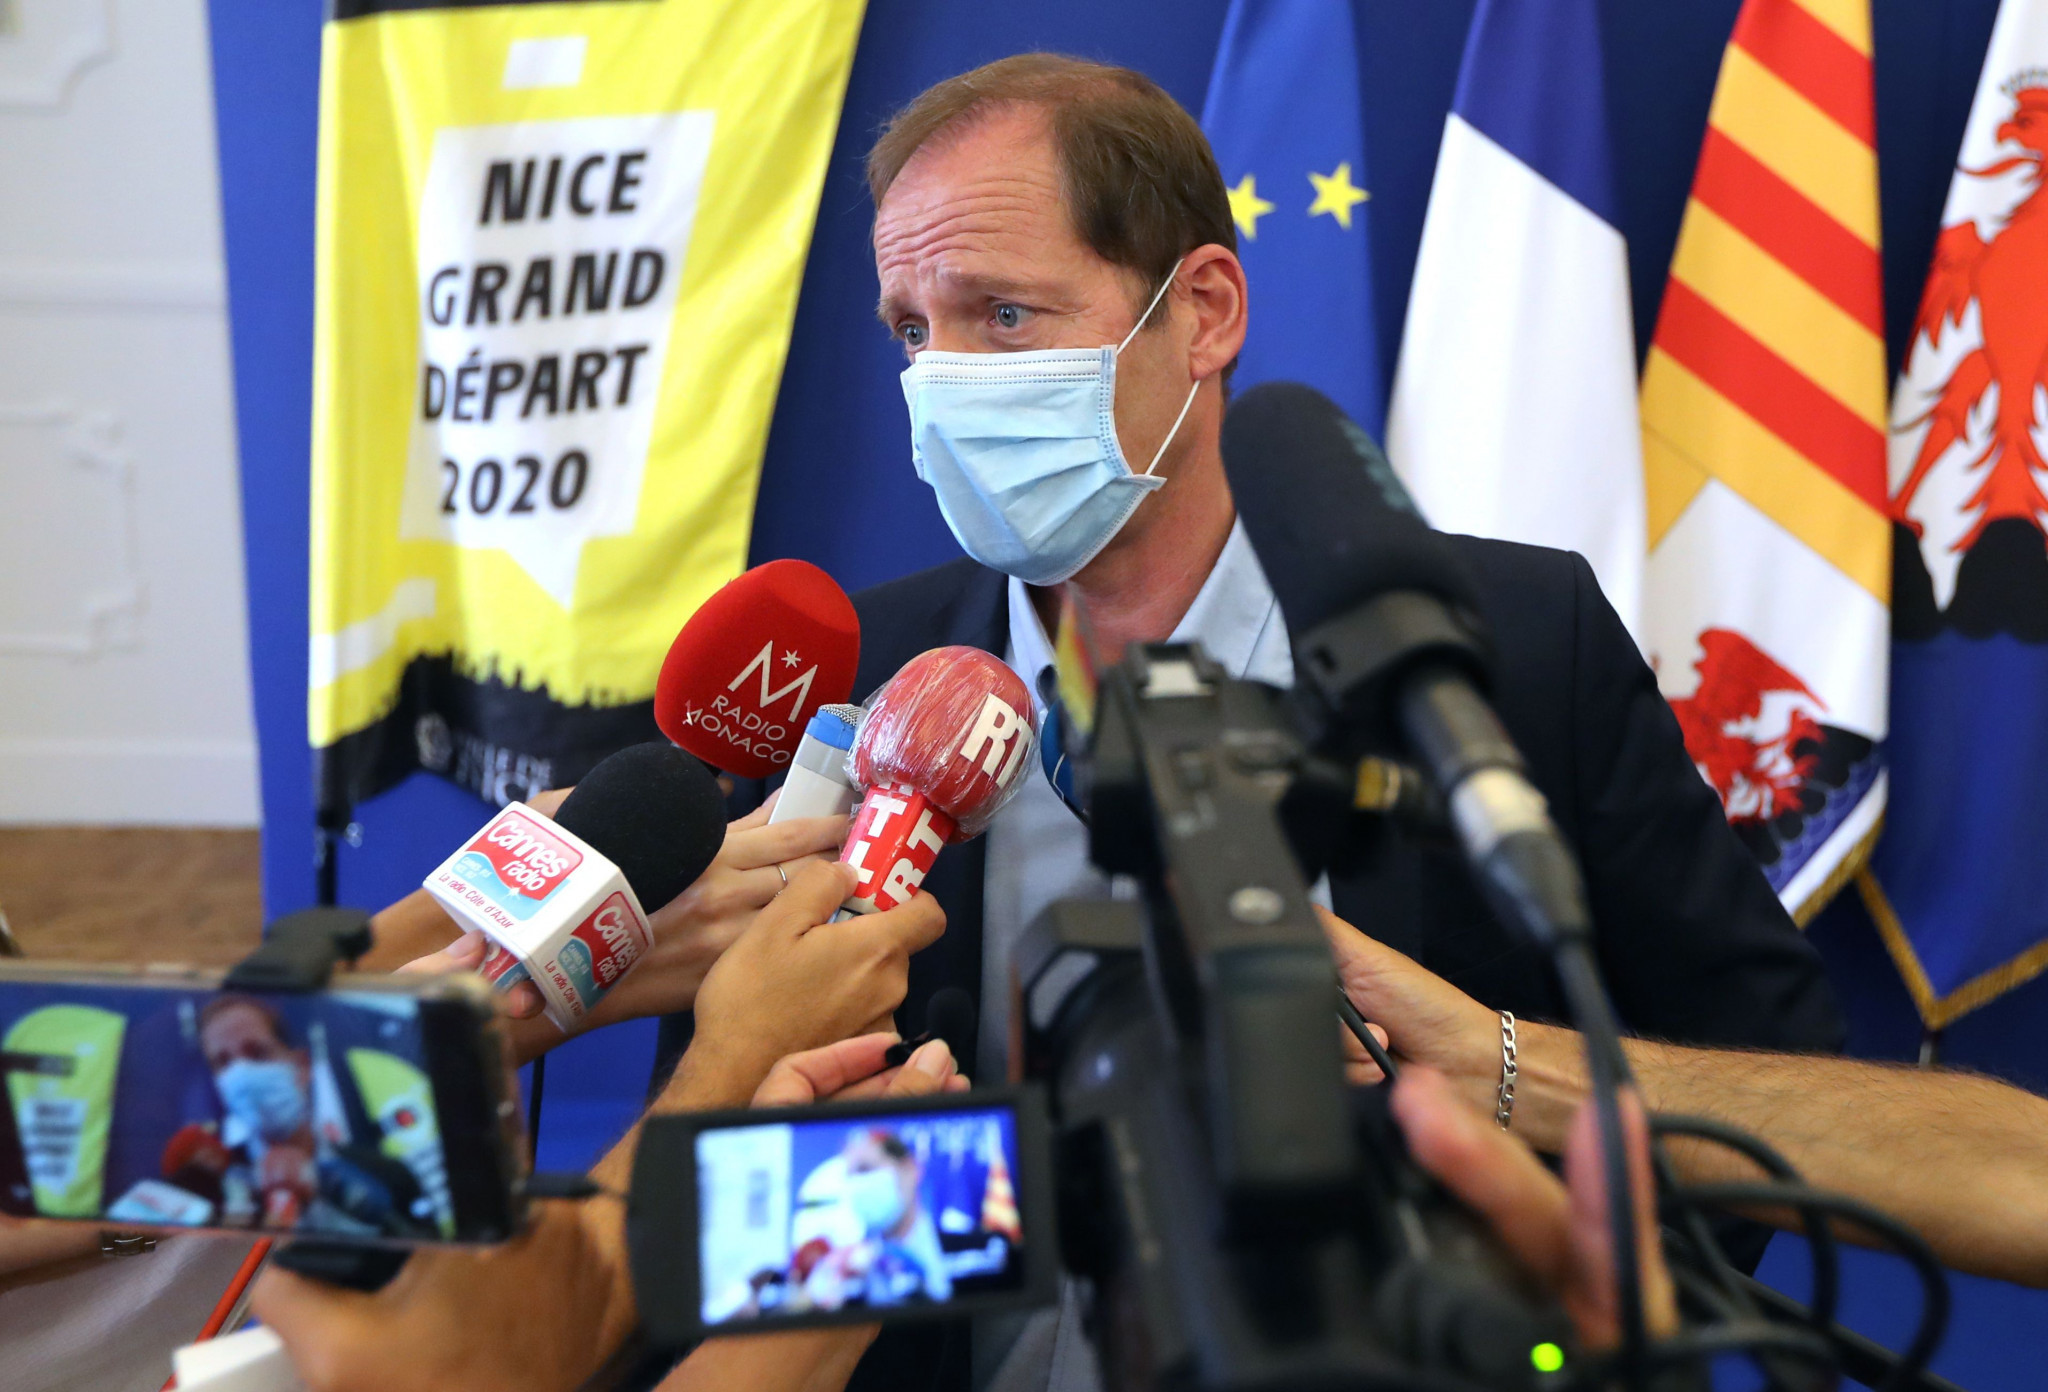 A victory to arrive in Paris, says Tour de France director Prudhomme as race concludes